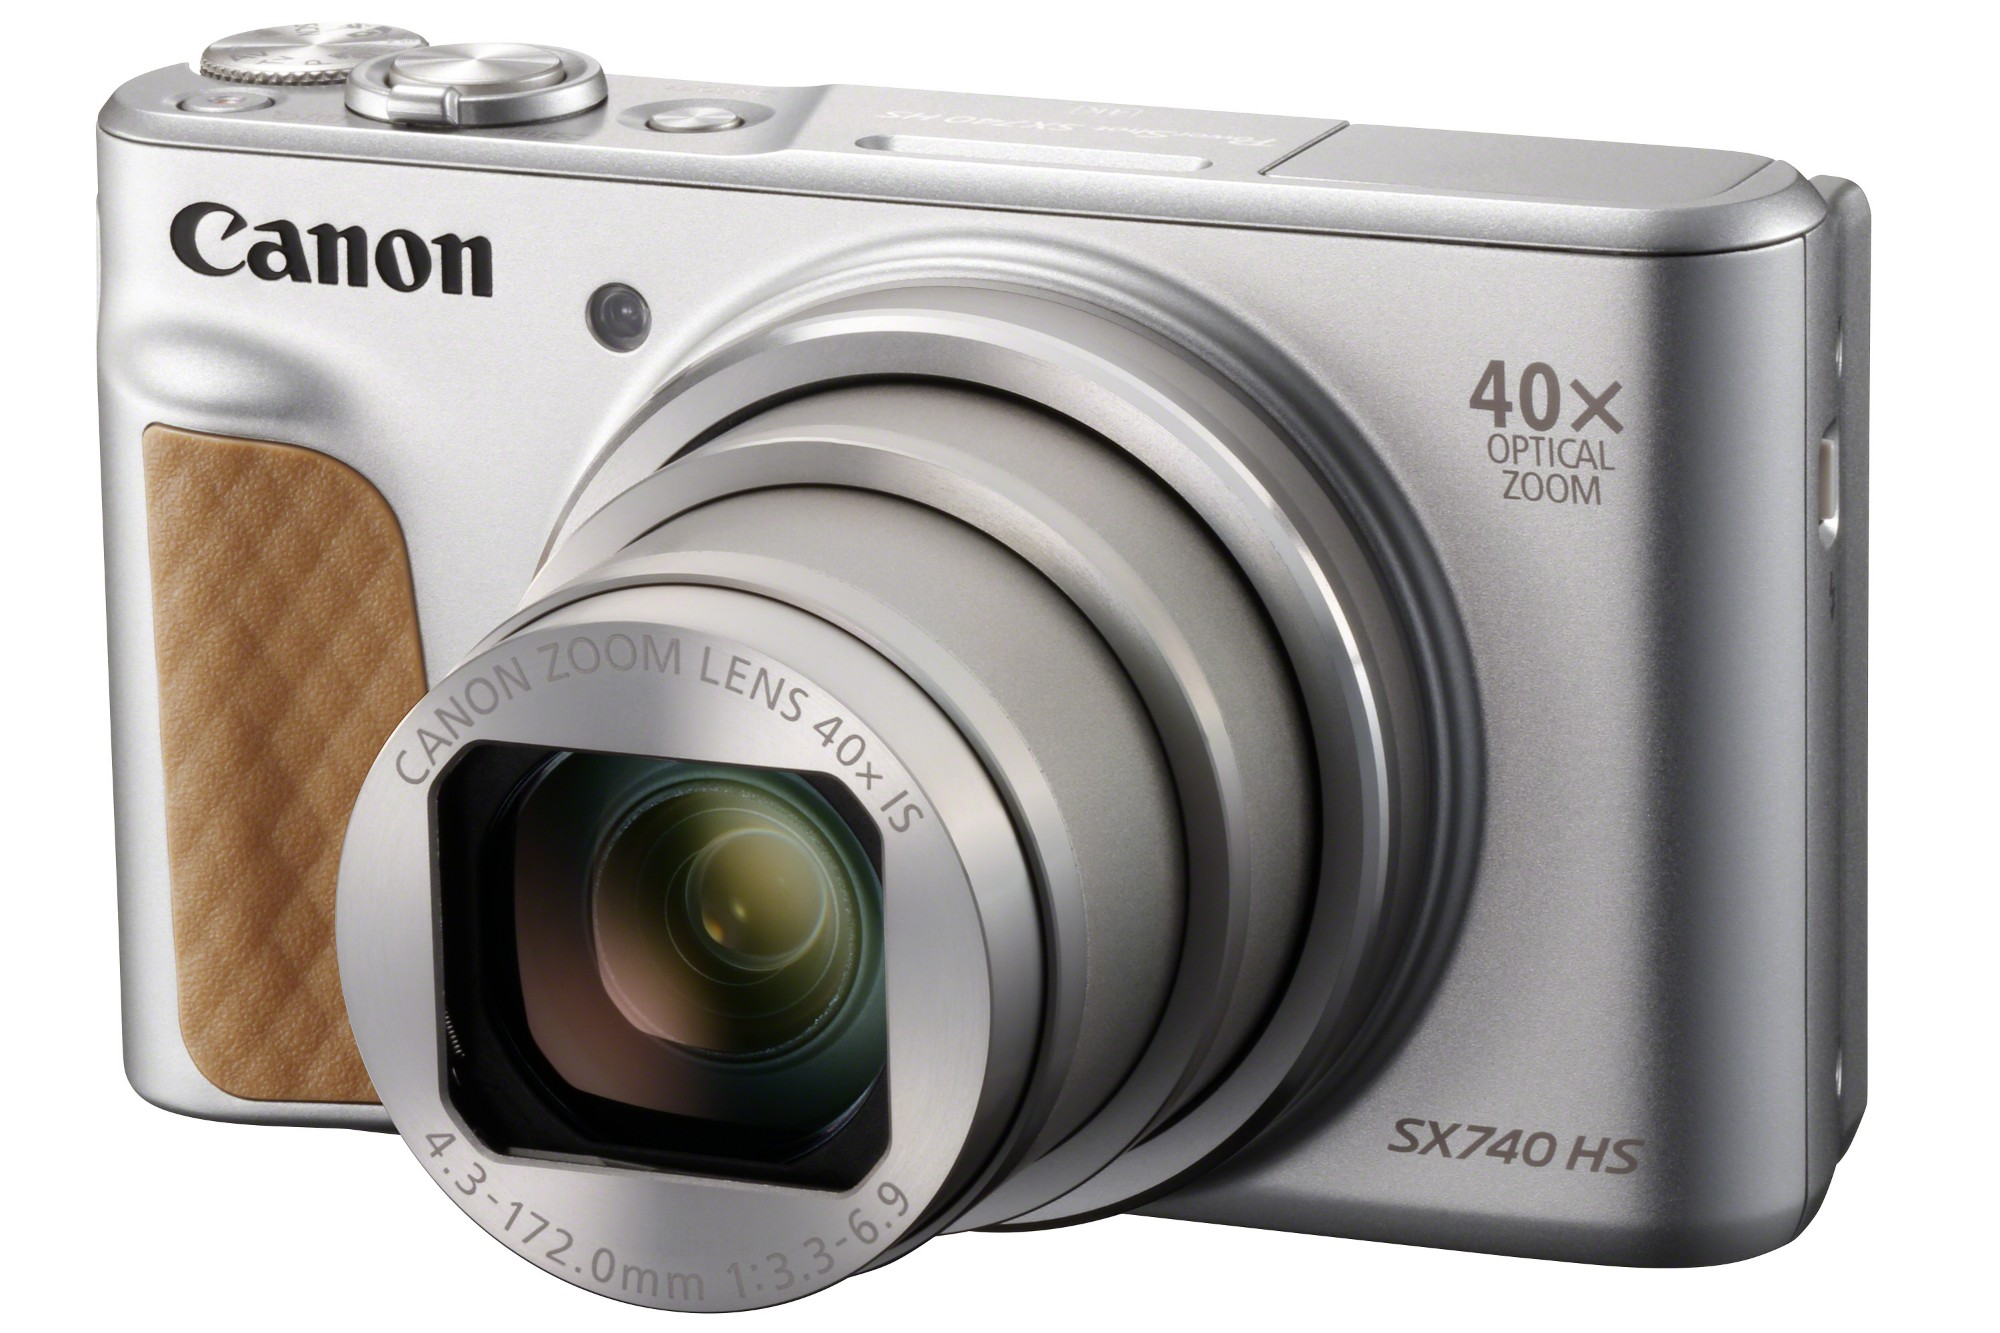 Canon PowerShot SX740 HS 20.3MP 40x Zoom Compact Camera - Silver